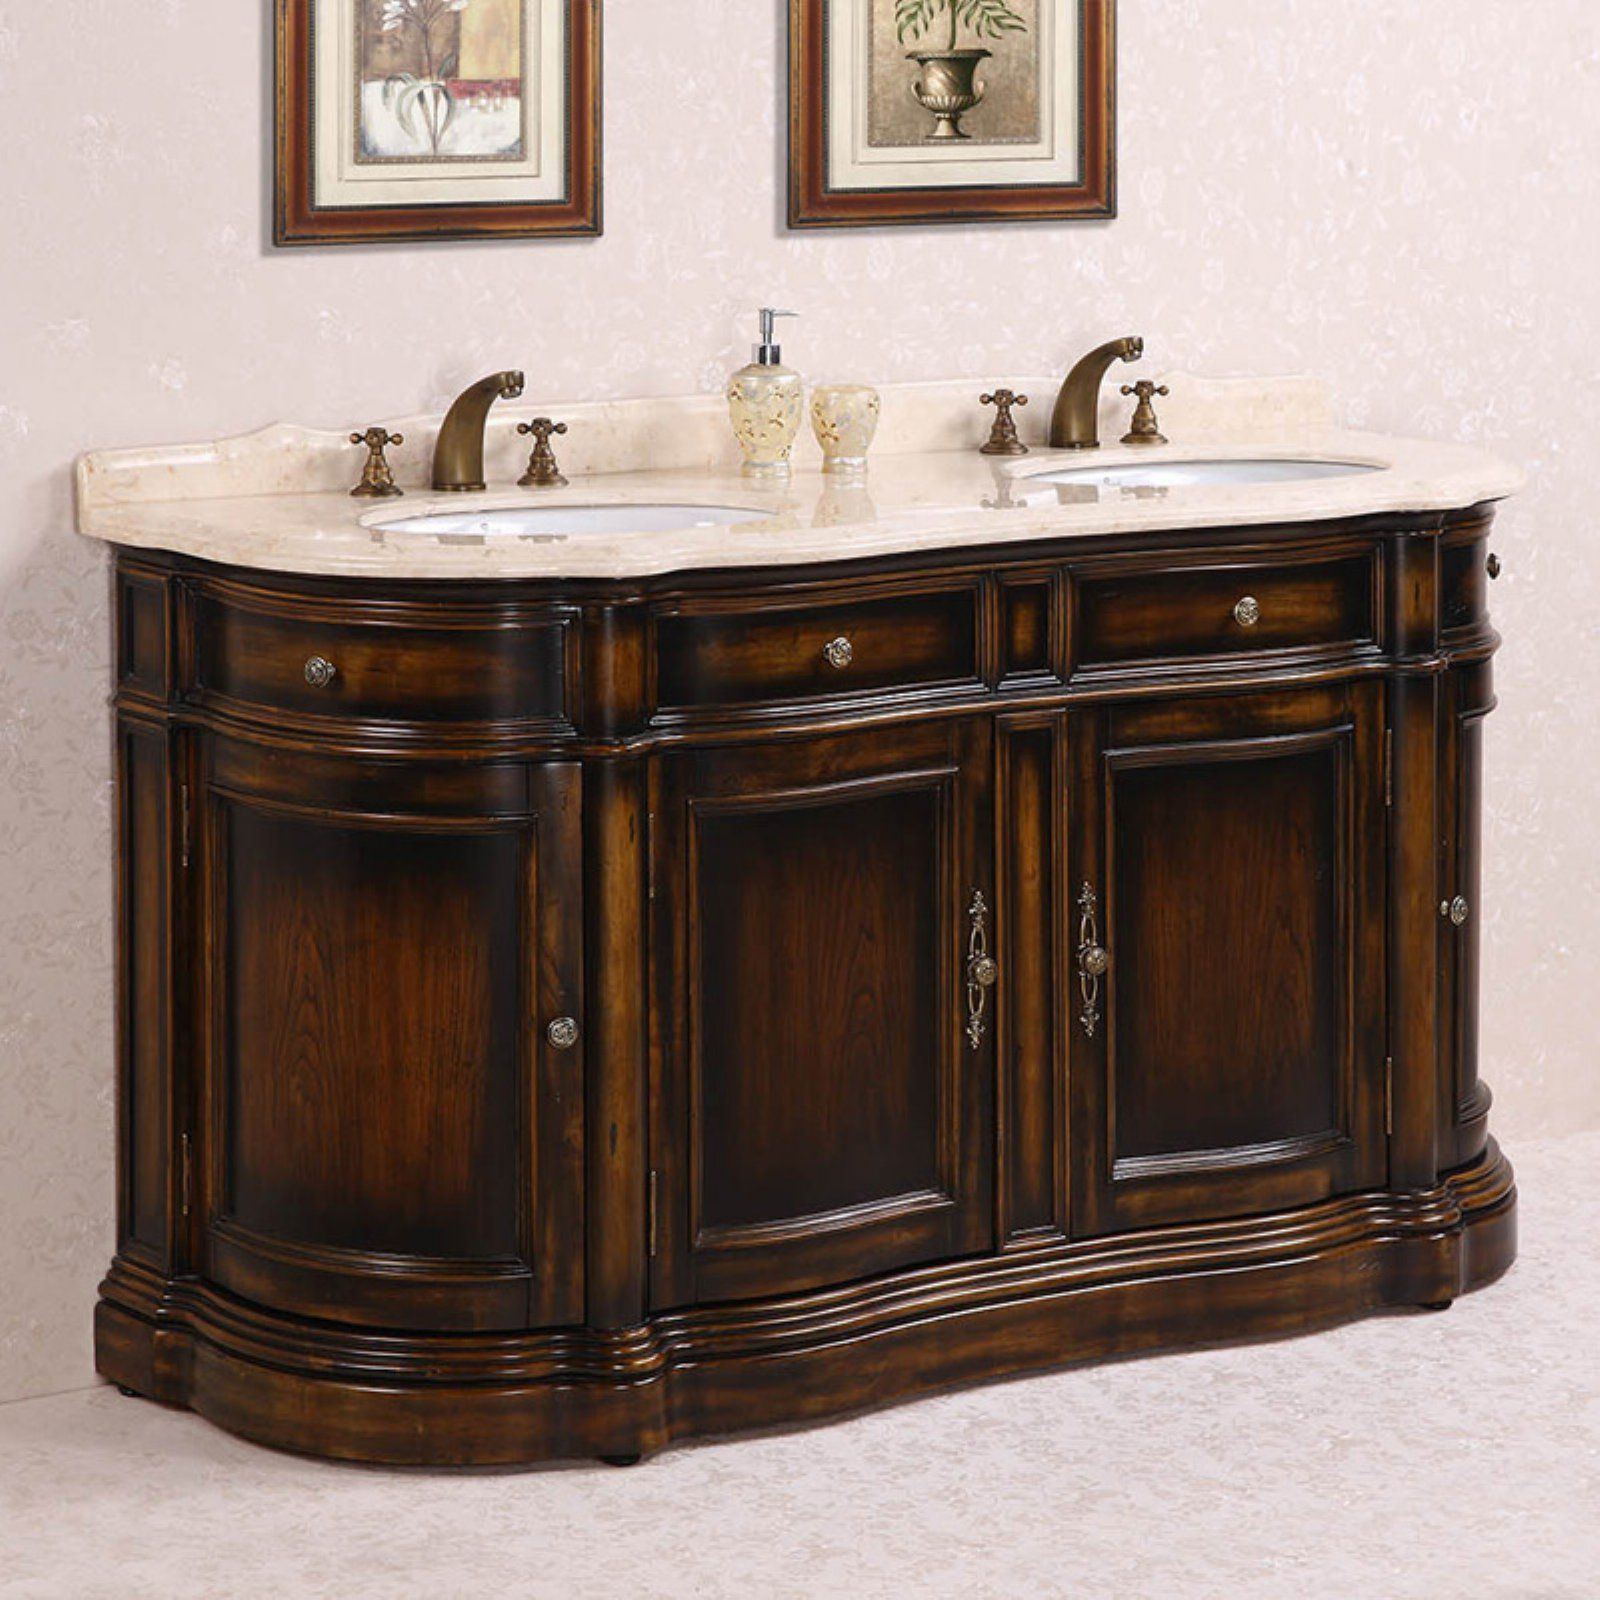 Legion Furniture Wh3066 66 In Double Bathroom Vanity Double Vanity Bathroom Vanity Sink Bathroom Vanity